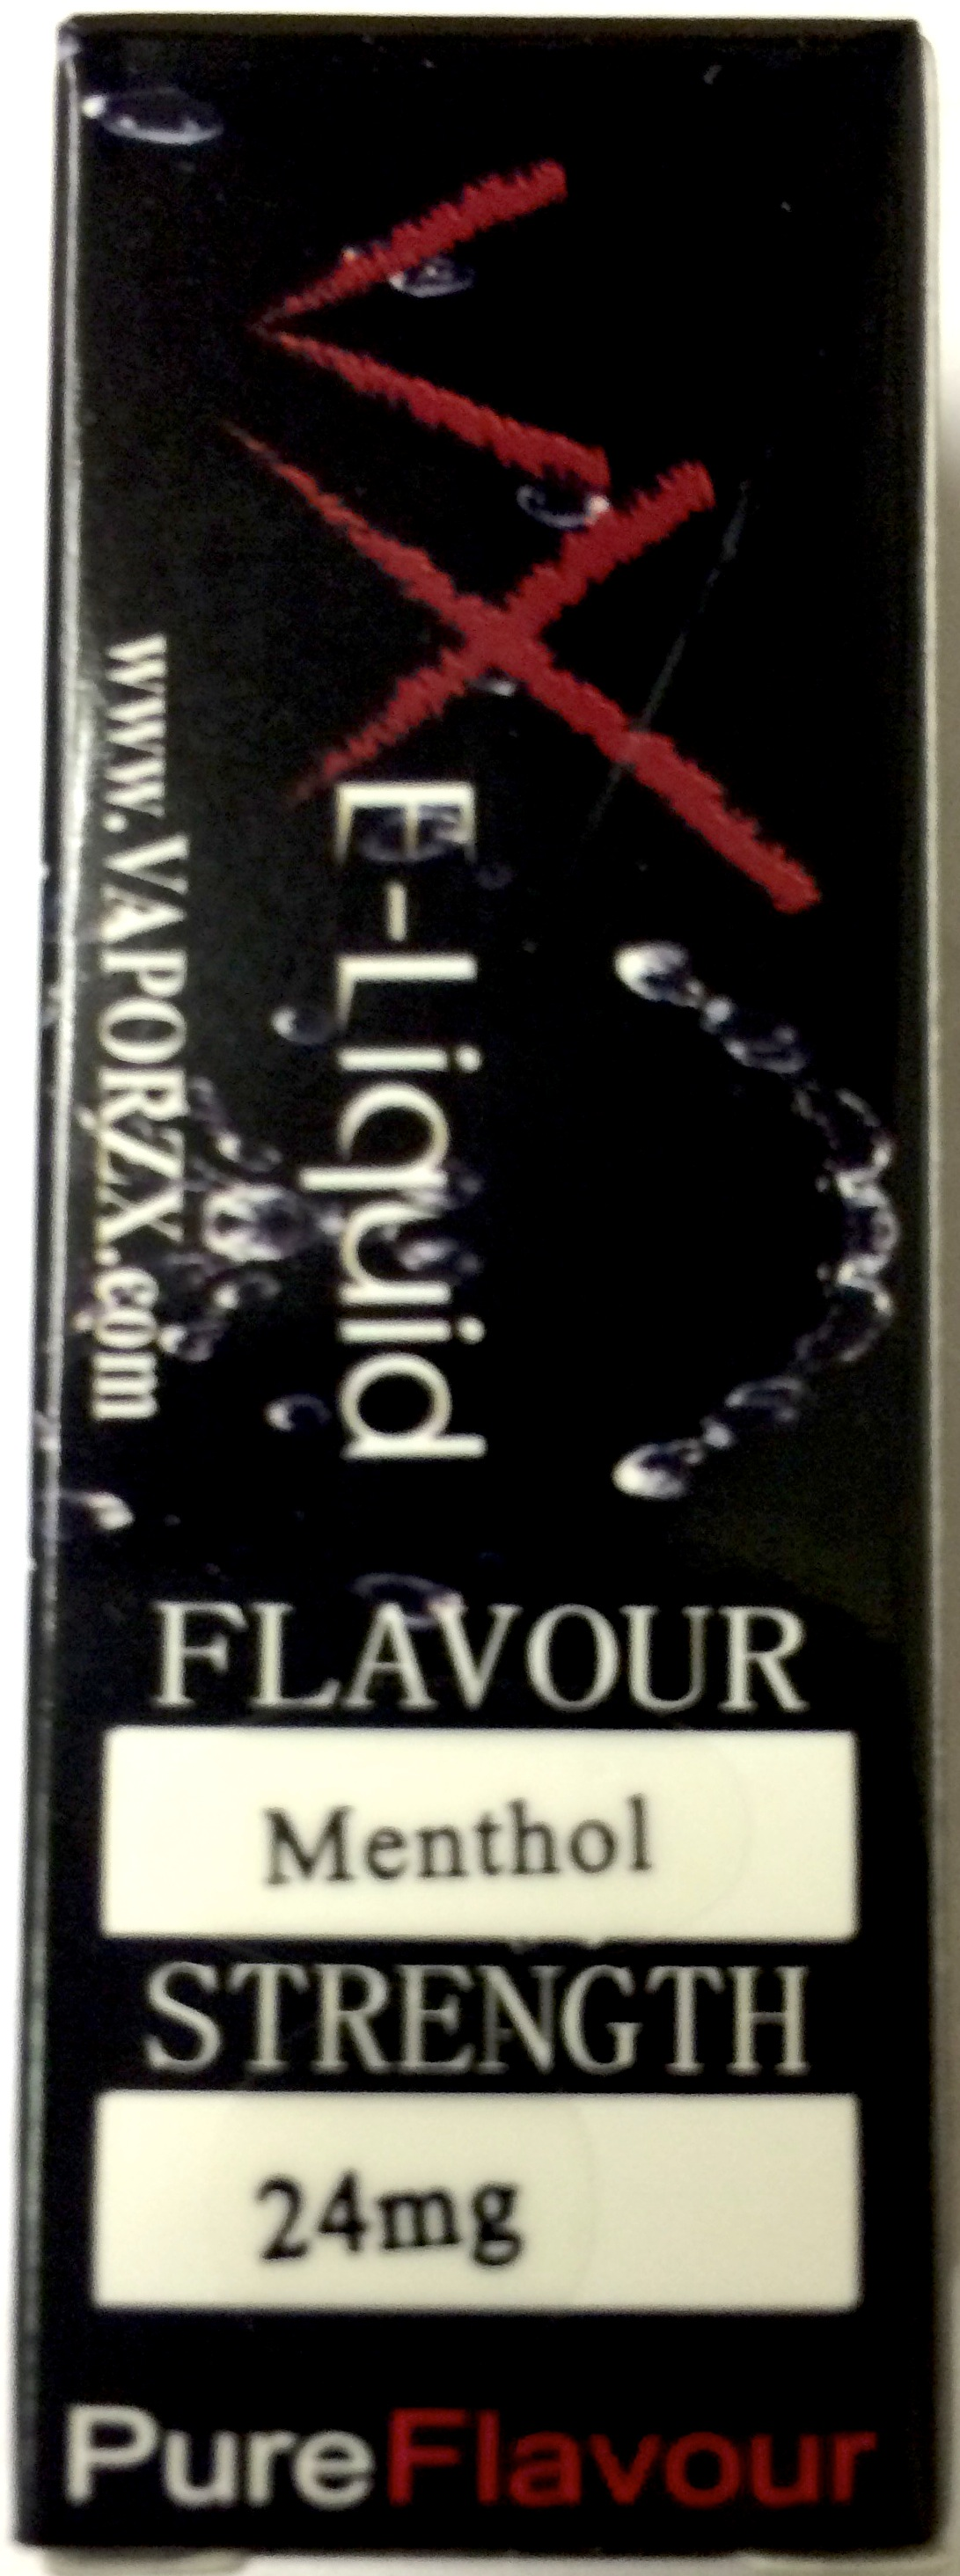 E-LIQUID HOOKAH MEN 24MG EACH